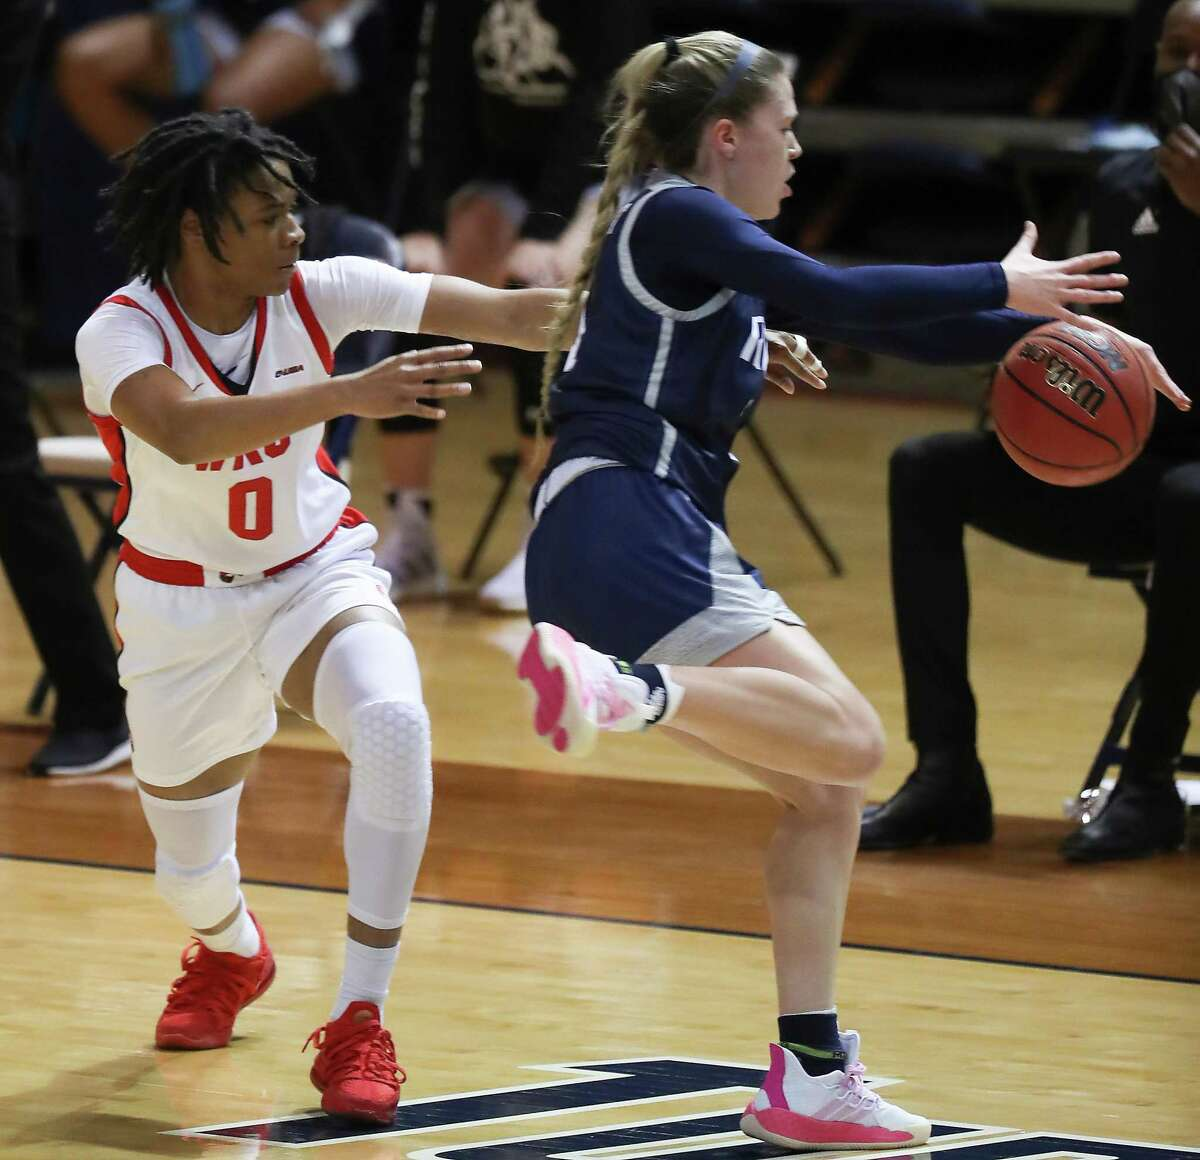 Rice guard Katelyn Crosthwait steals the ball from Western Kentucky guard Myriah Johnson (0) during the first half of an NCAA women's basketball game on Friday, Feb. 12, 2021, at Tudor Field House in Houston.